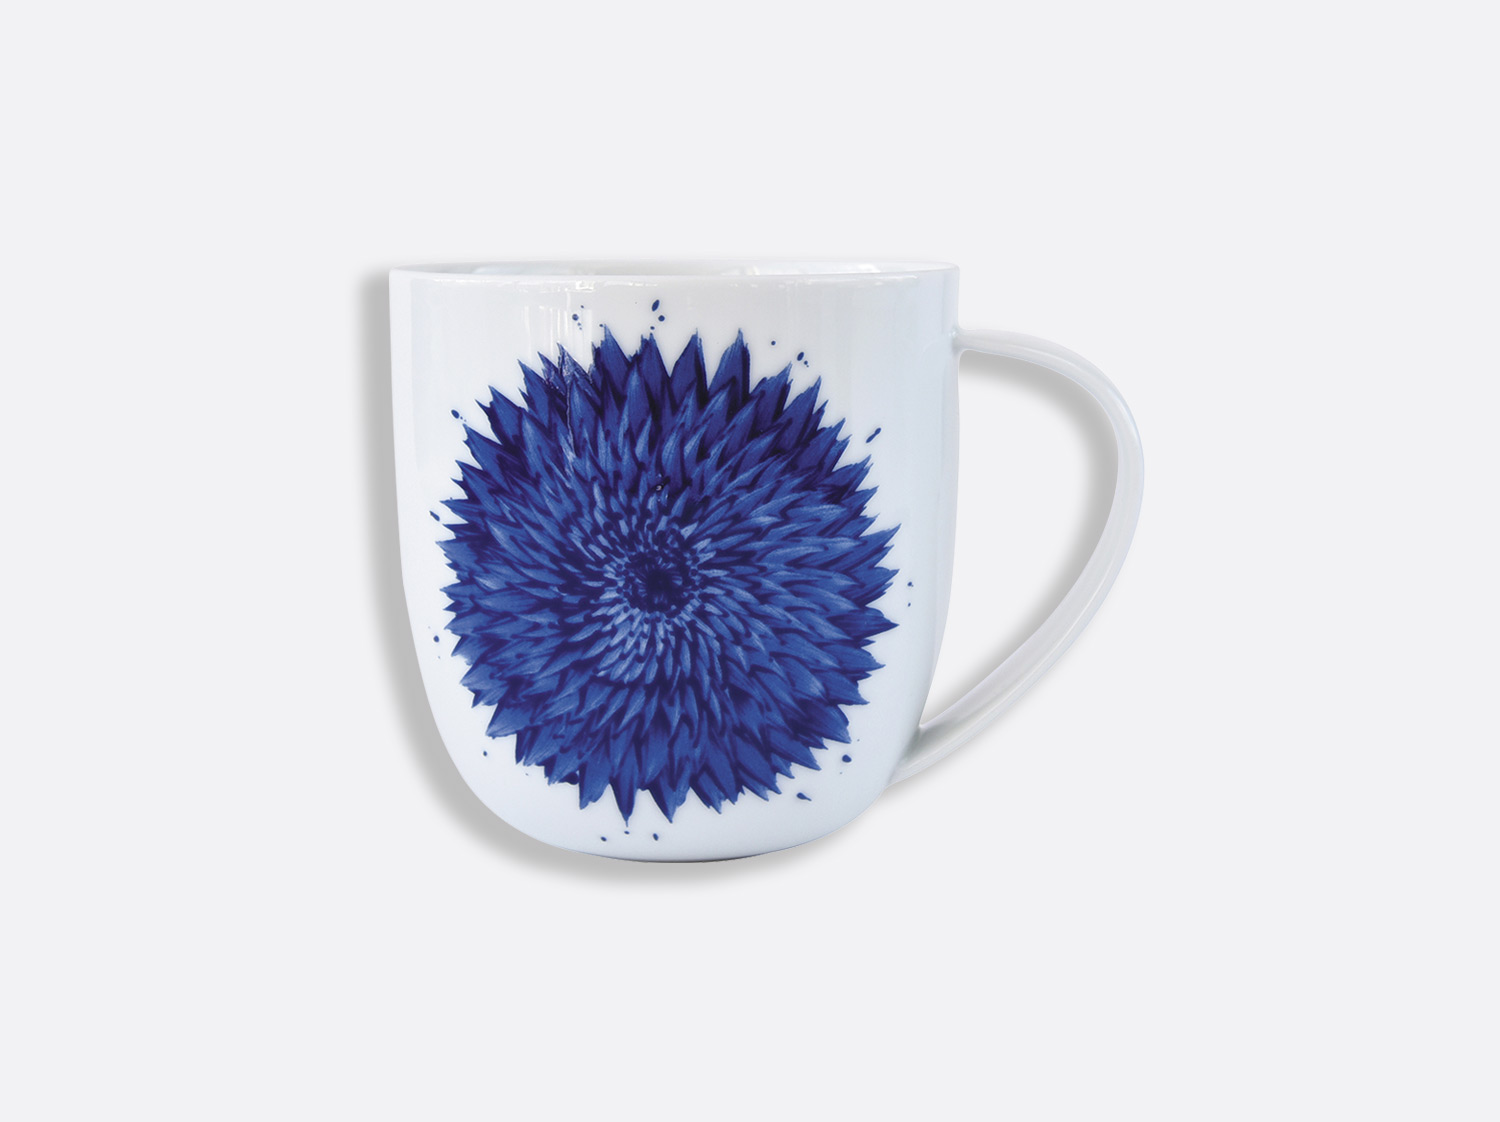 China Mug blue 13 oz of the collection IN BLOOM - Zemer Peled | Bernardaud